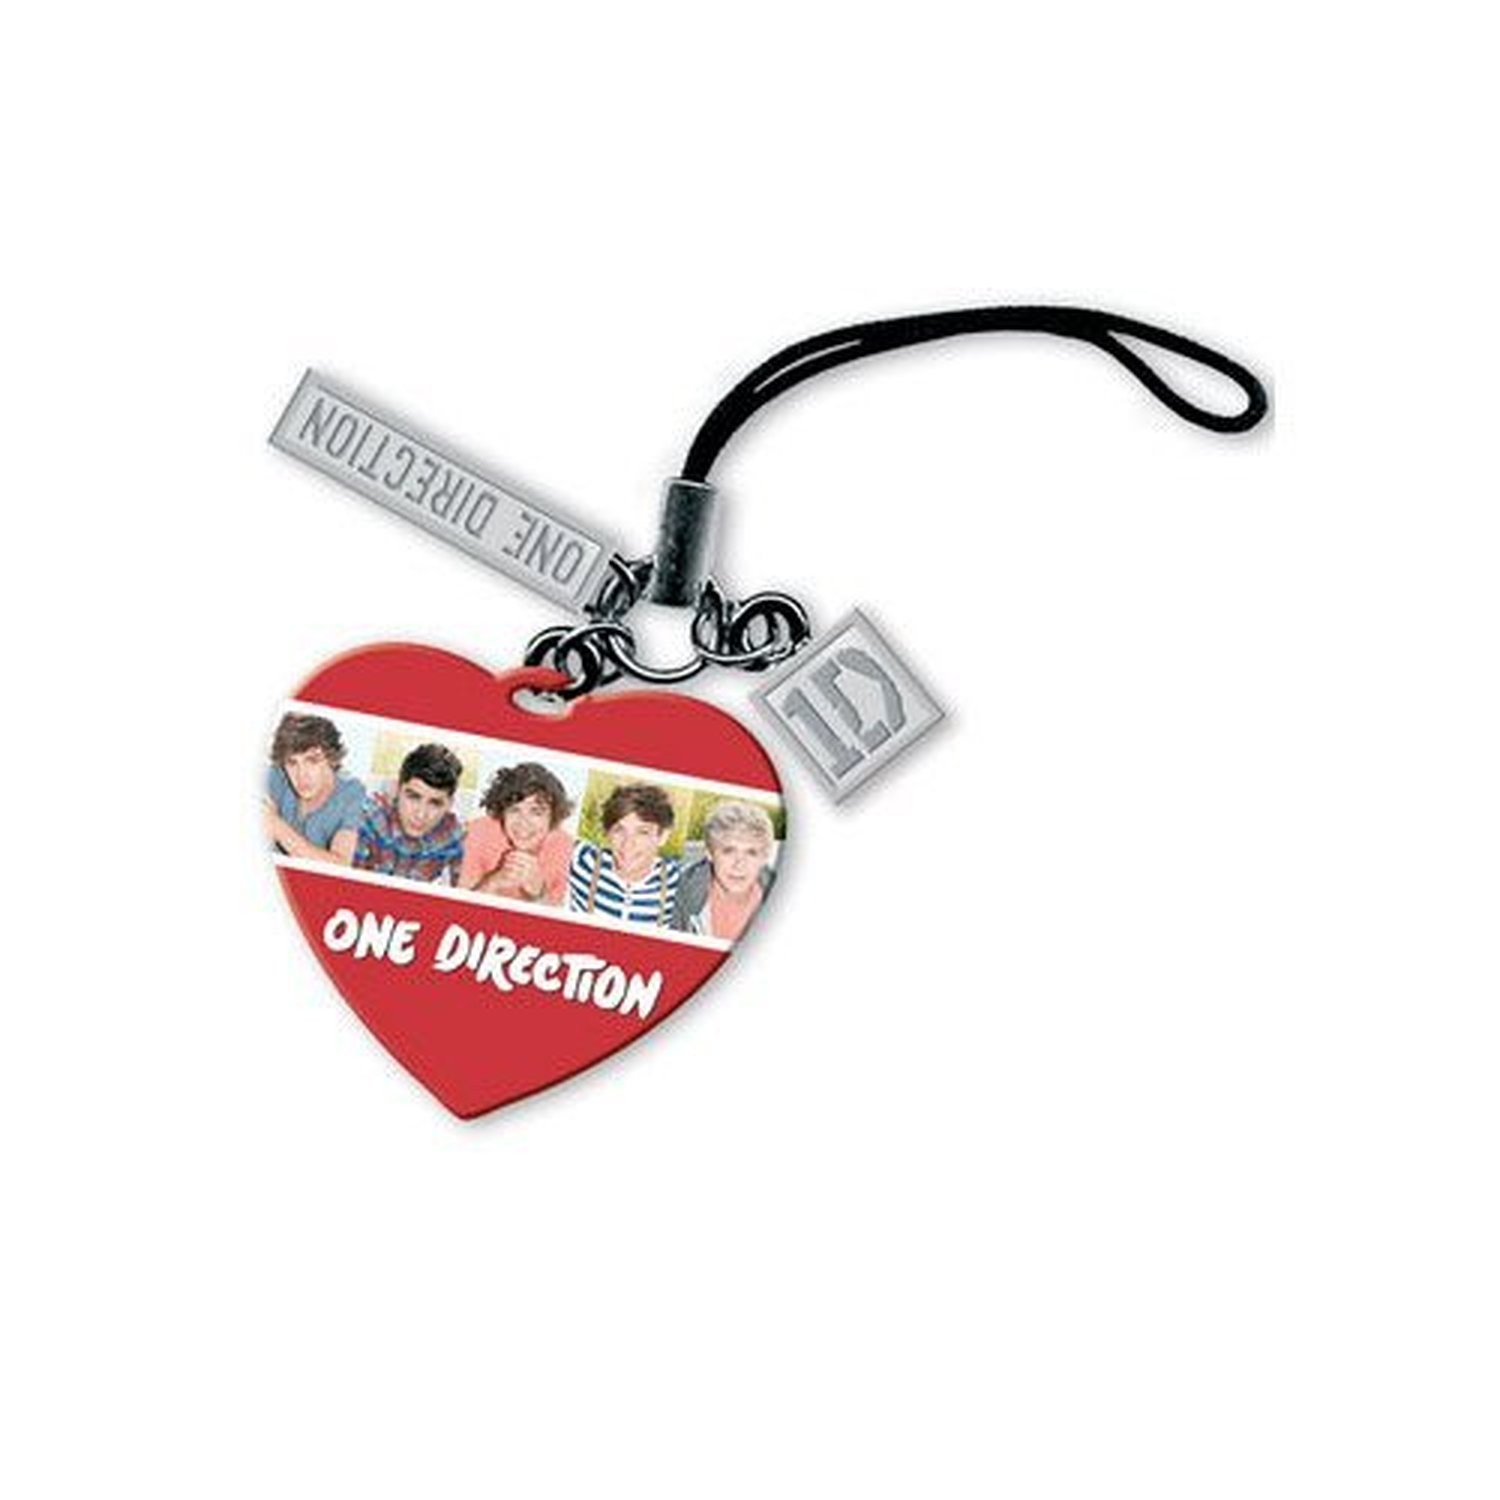 One Direction - Phone charm Official Licensed Band Merchandise